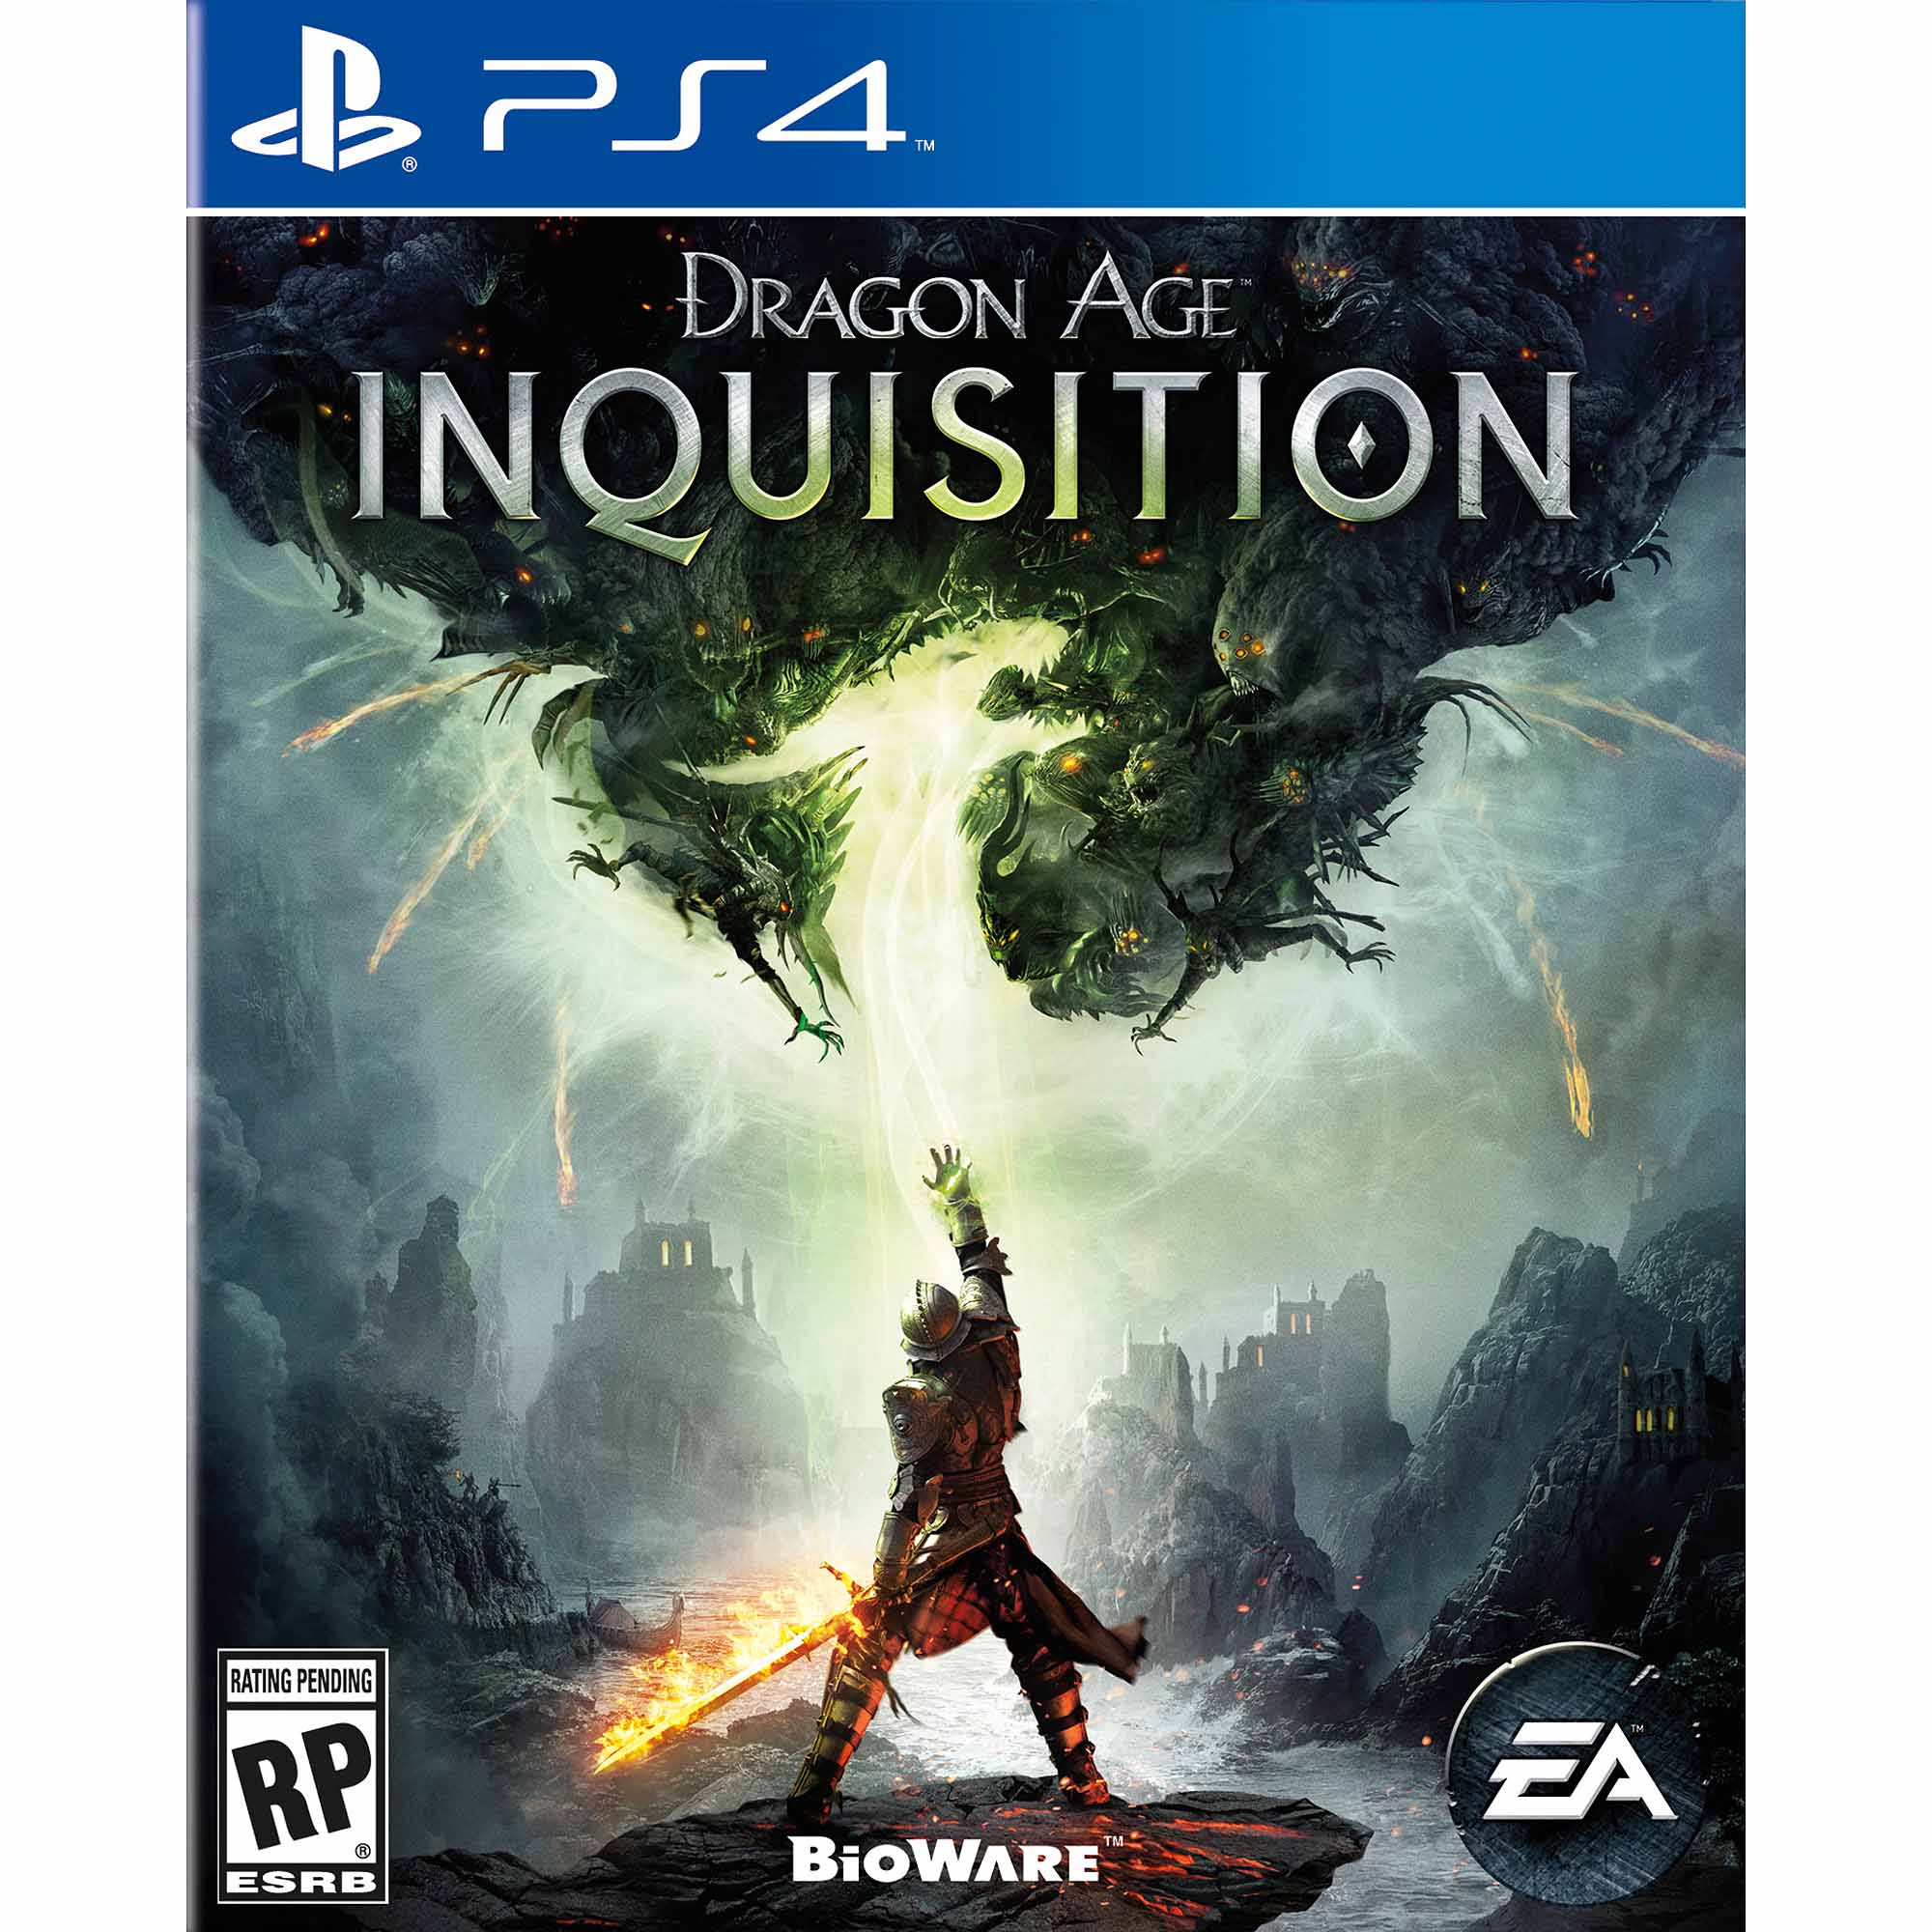 Dragon Age Inquisition (Playstation 4) by BioWare